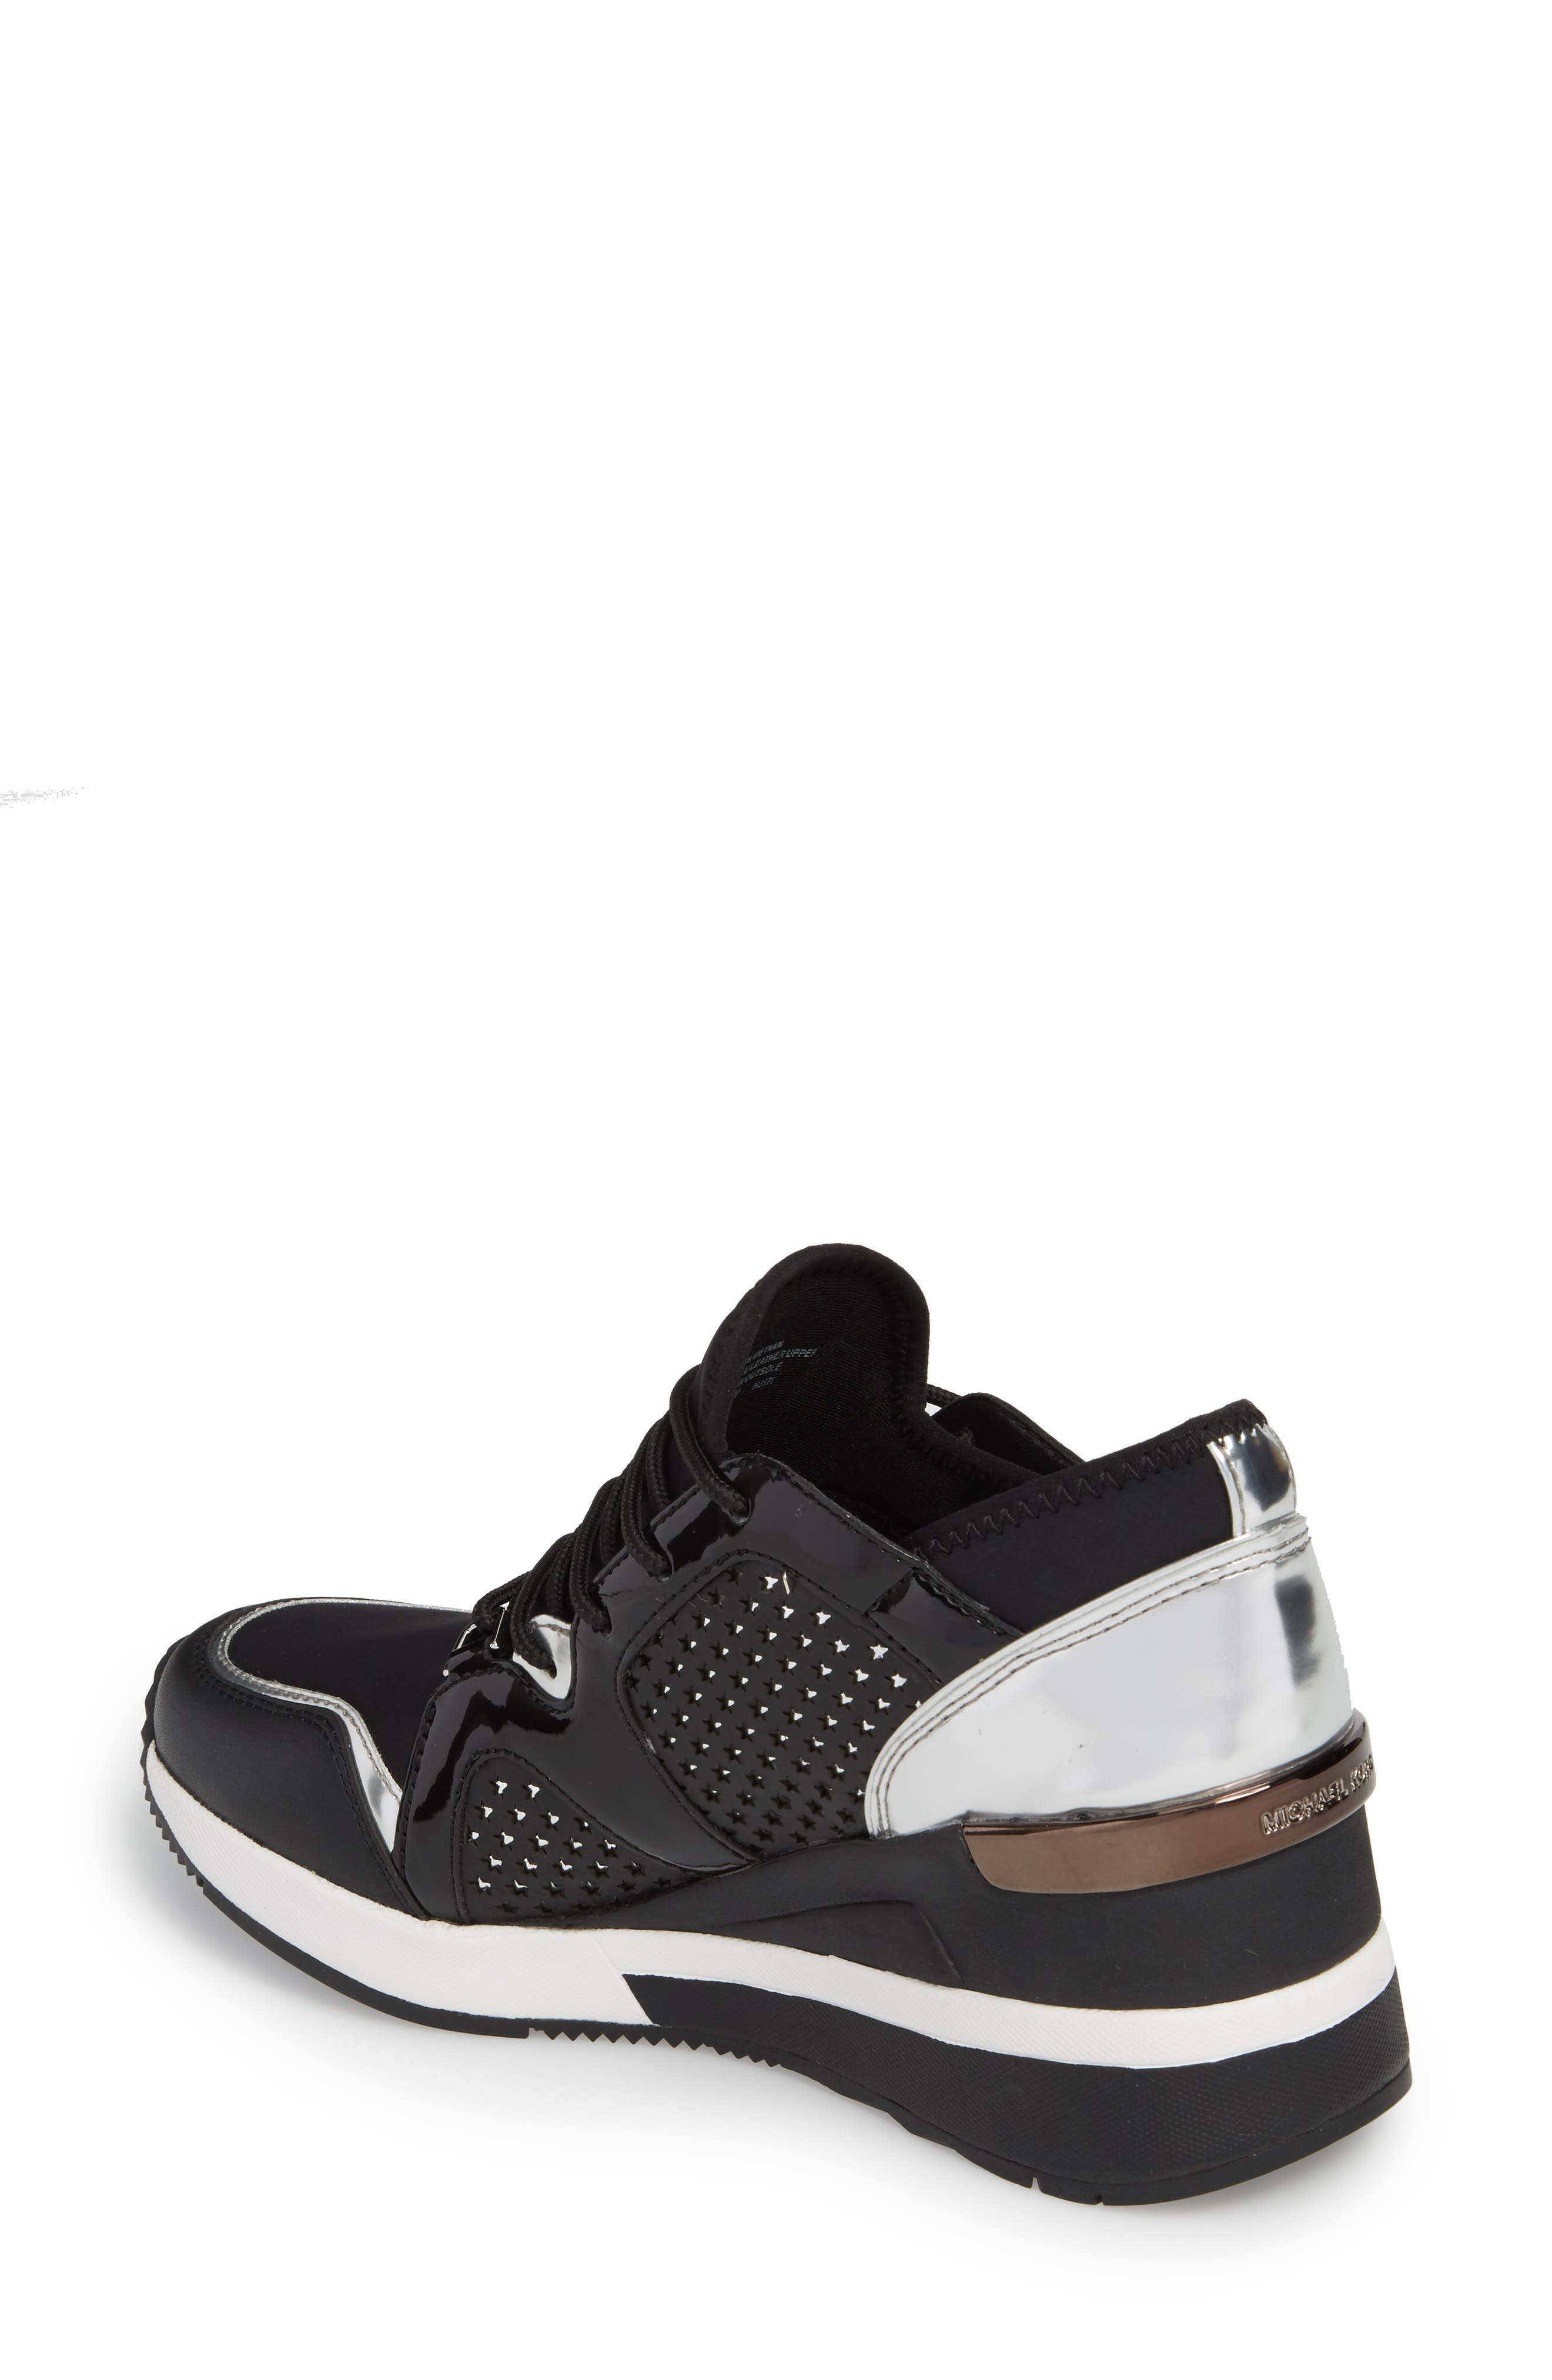 Scout Wedge Sneaker,                             Alternate thumbnail 2, color,